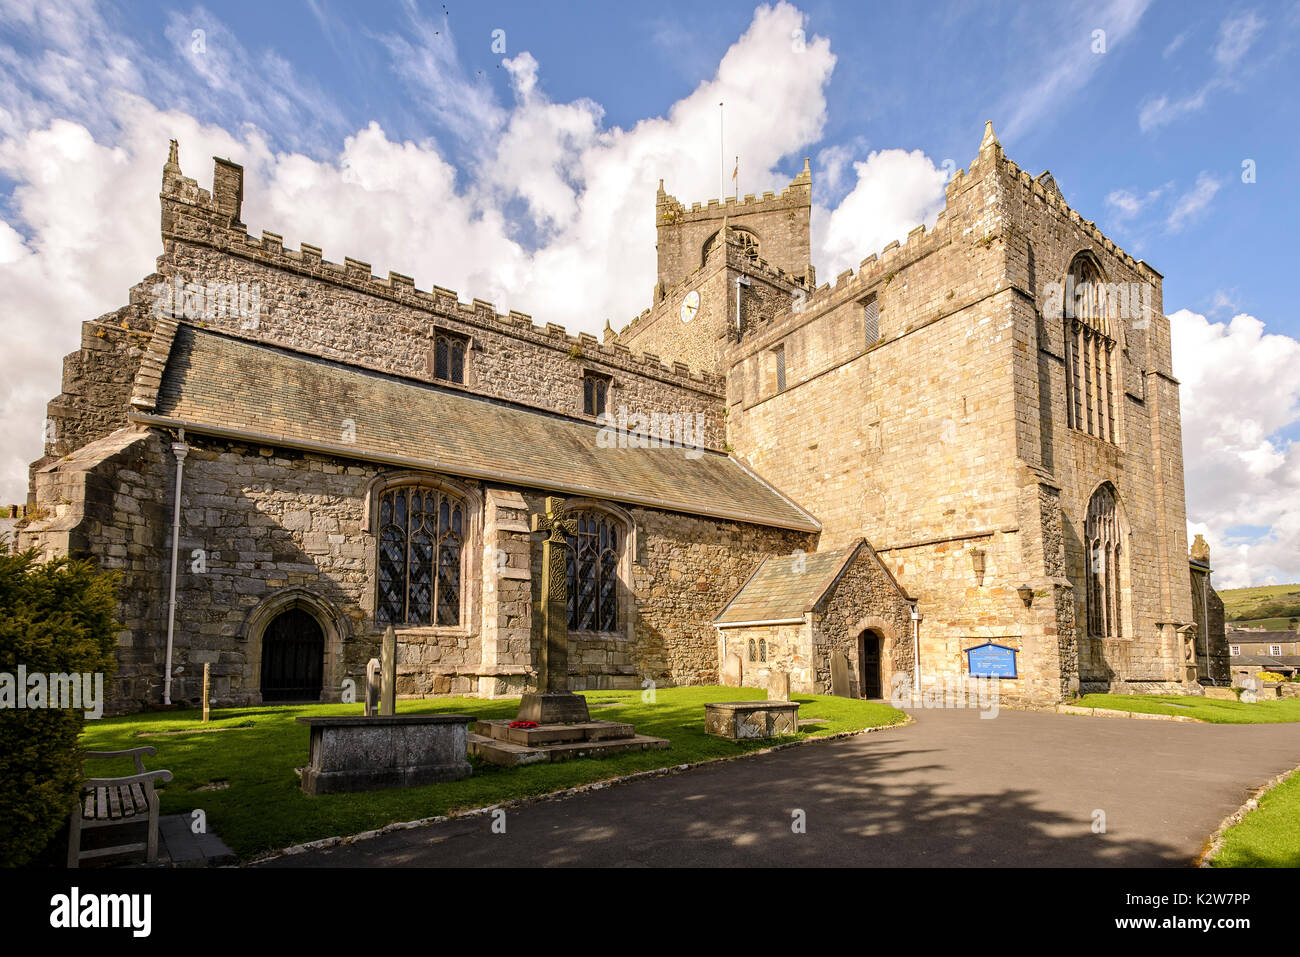 Priory church of St.Mary and St.Michael, Cartmel, Cumbria - Stock Image